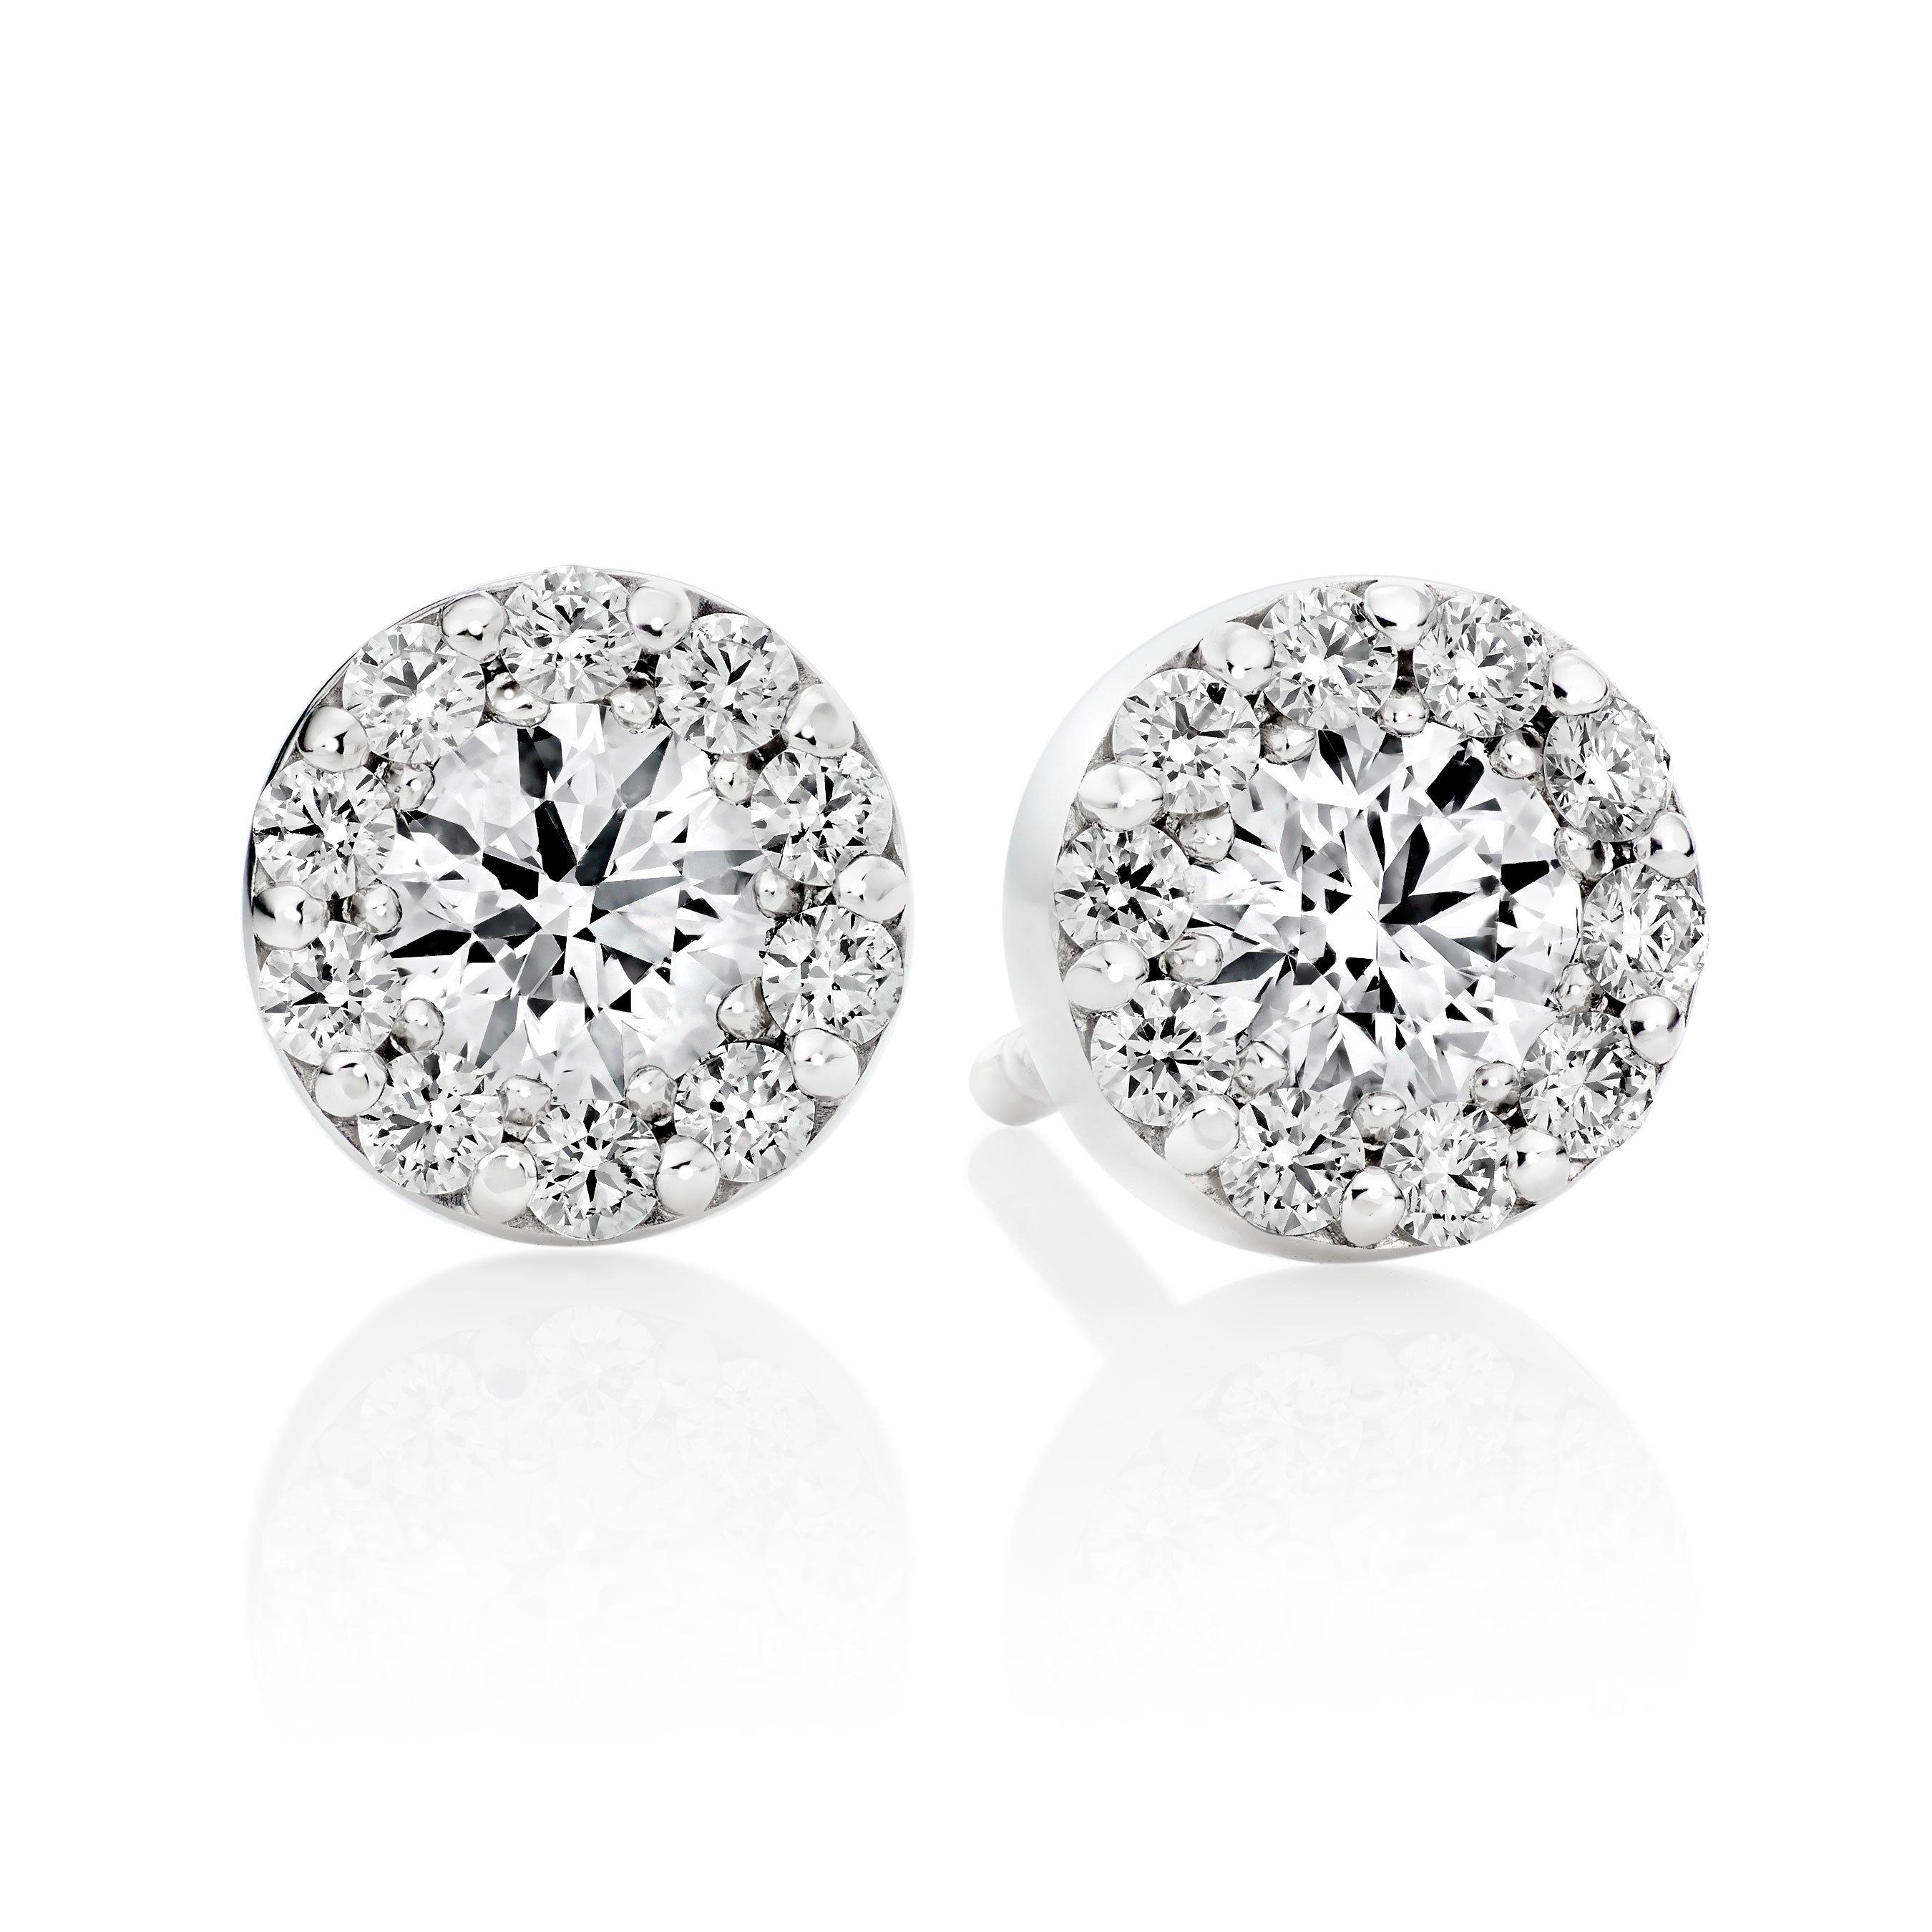 Hearts On Fire Fulfilment 18ct White Gold Diamond Cluster Earrings